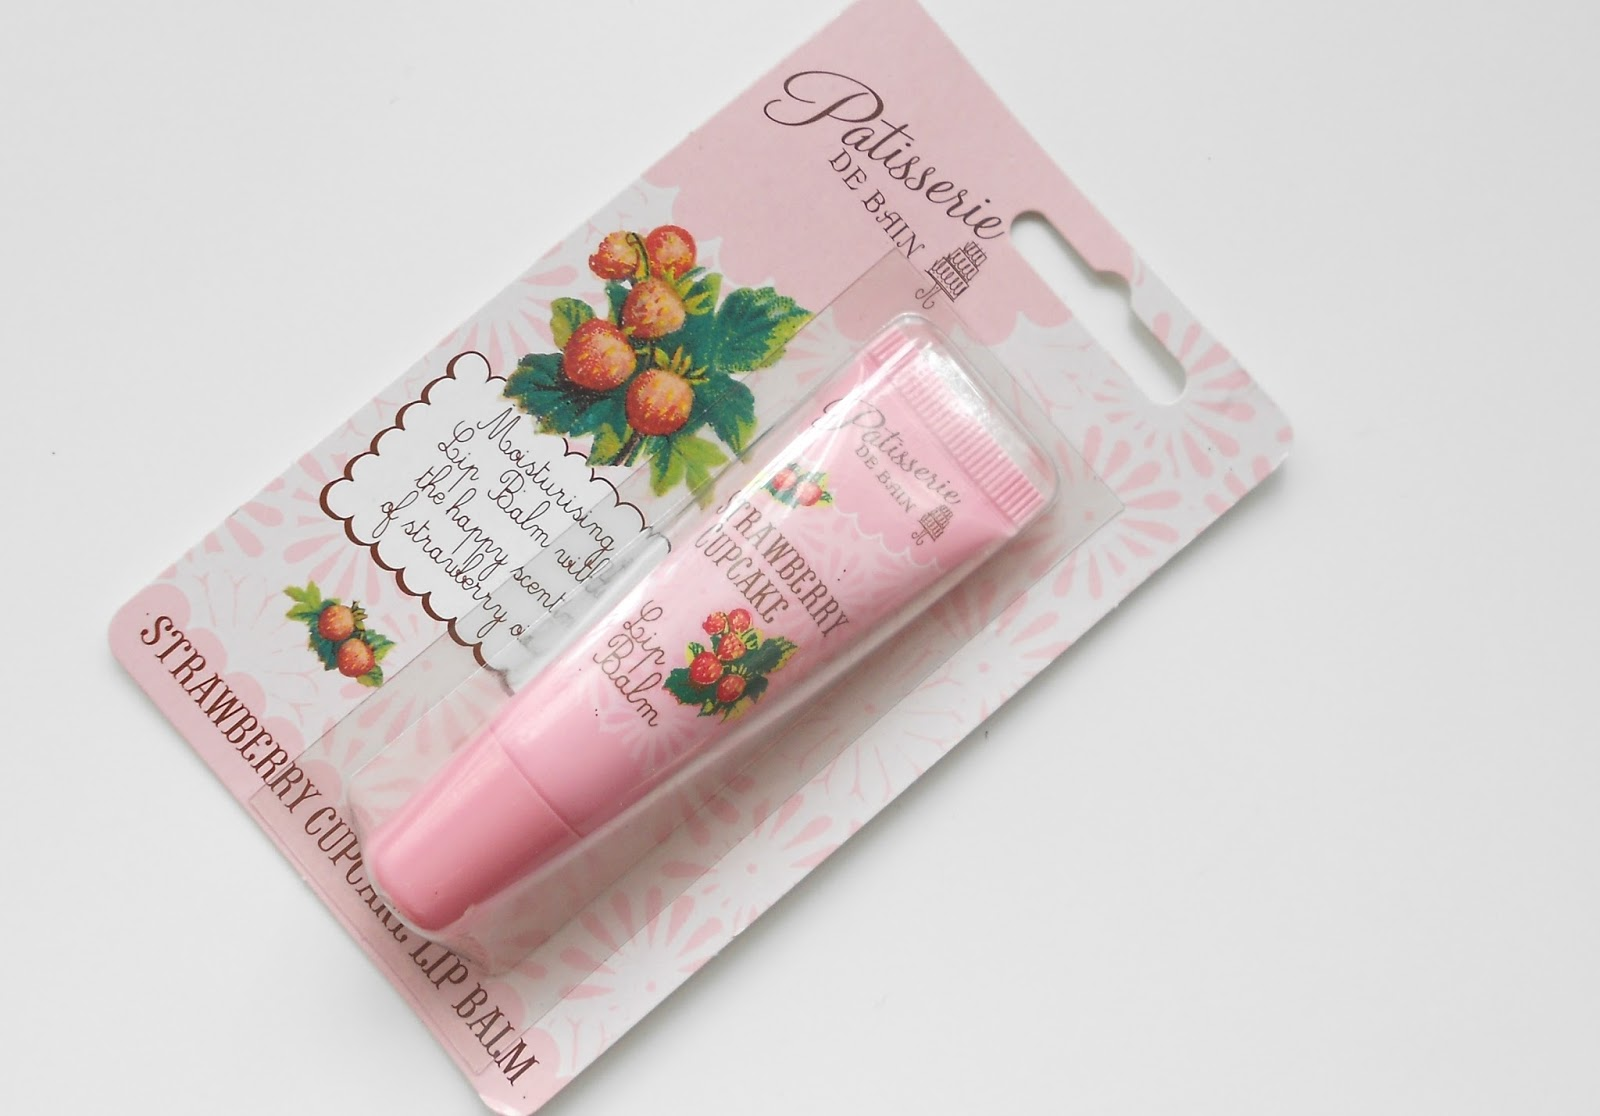 Patisserie de bain strawberry cupcake lip balm